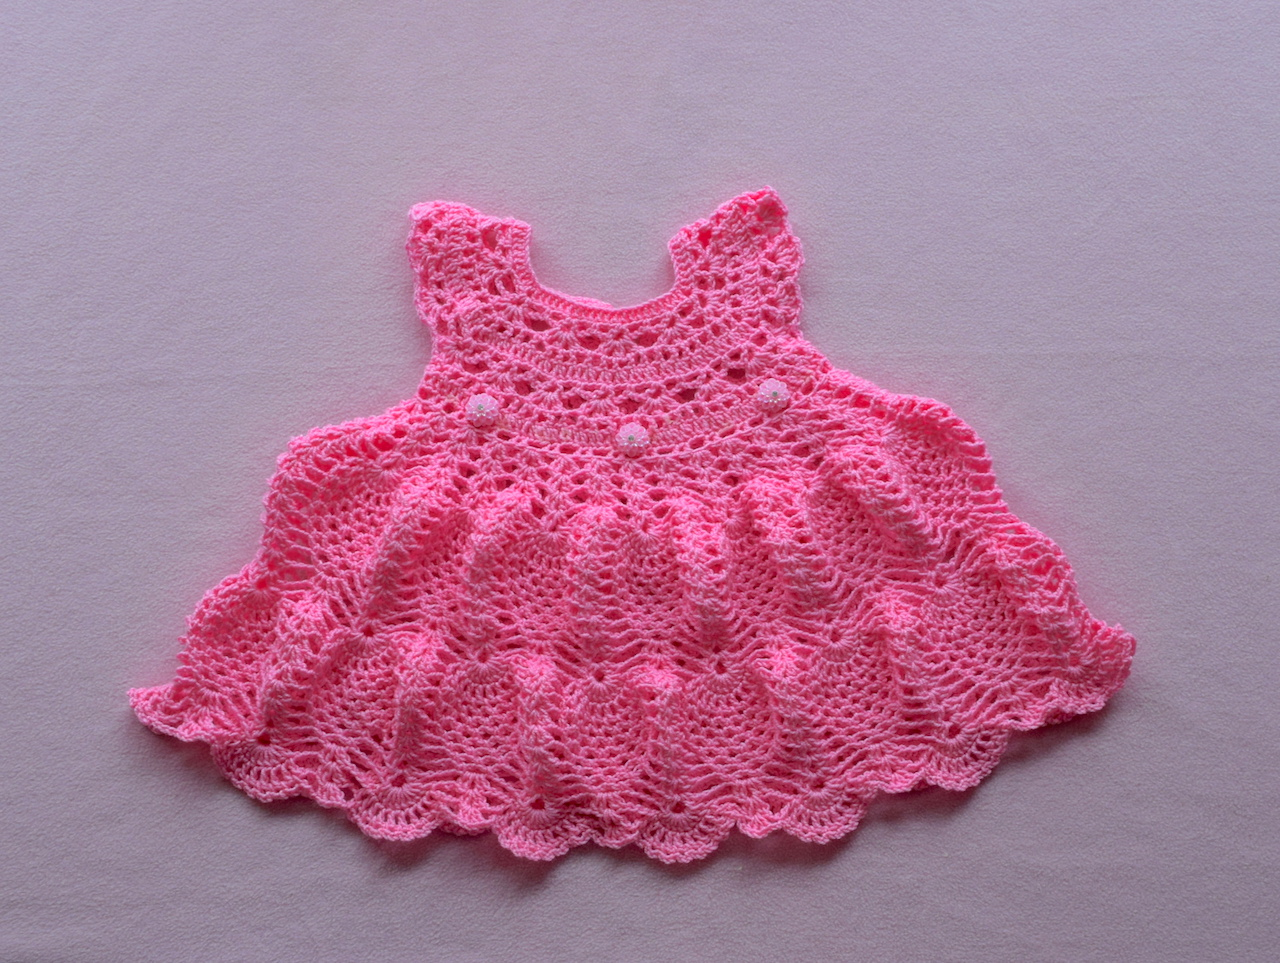 Rania Crochet Guide(Free Crochet Patterns and Video Tutorial)